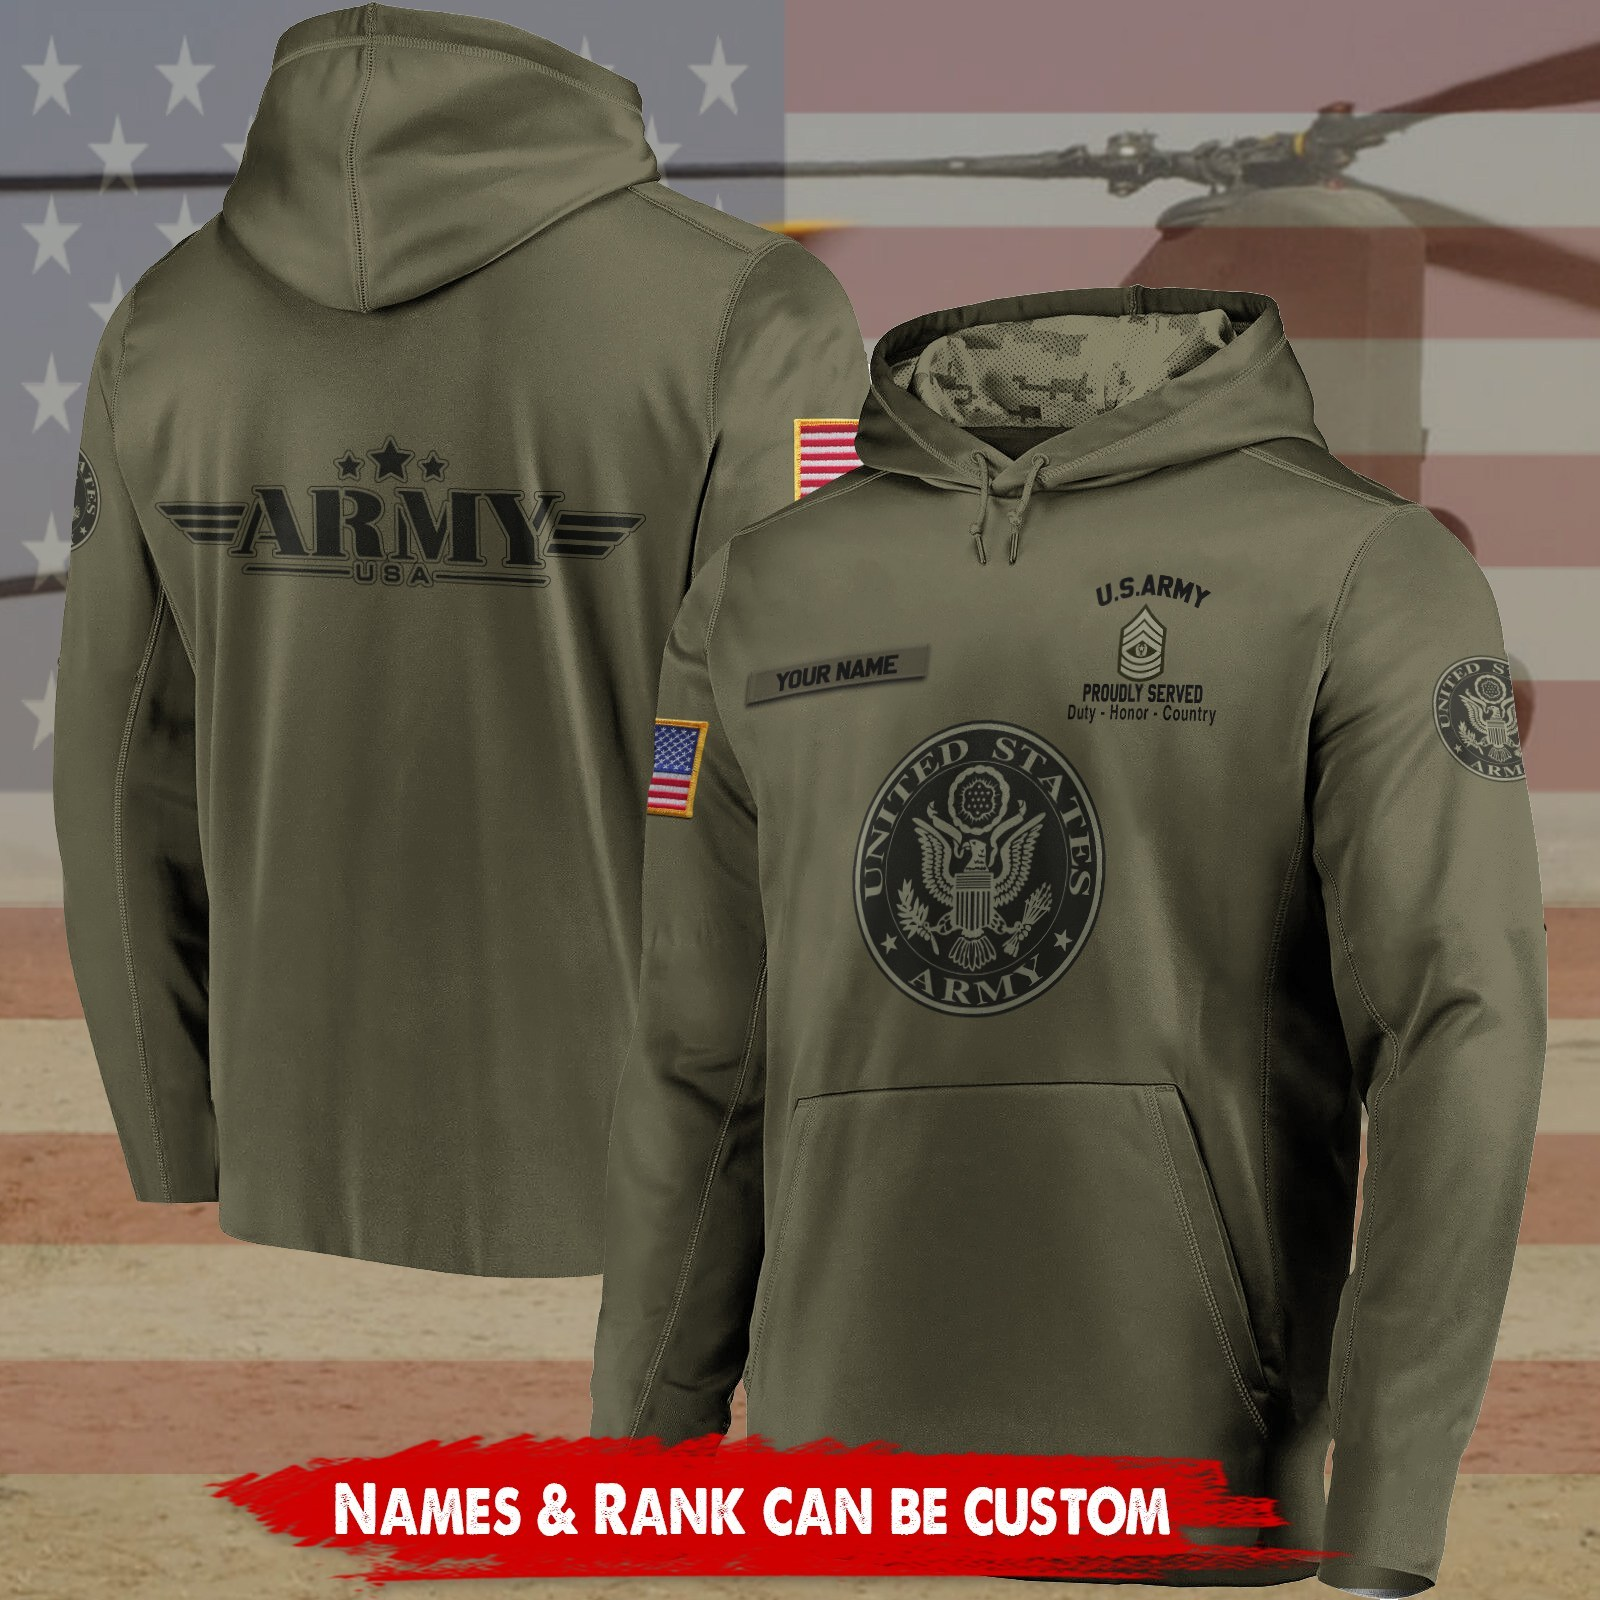 custom your name united states army proudly served all over printed shirt 3